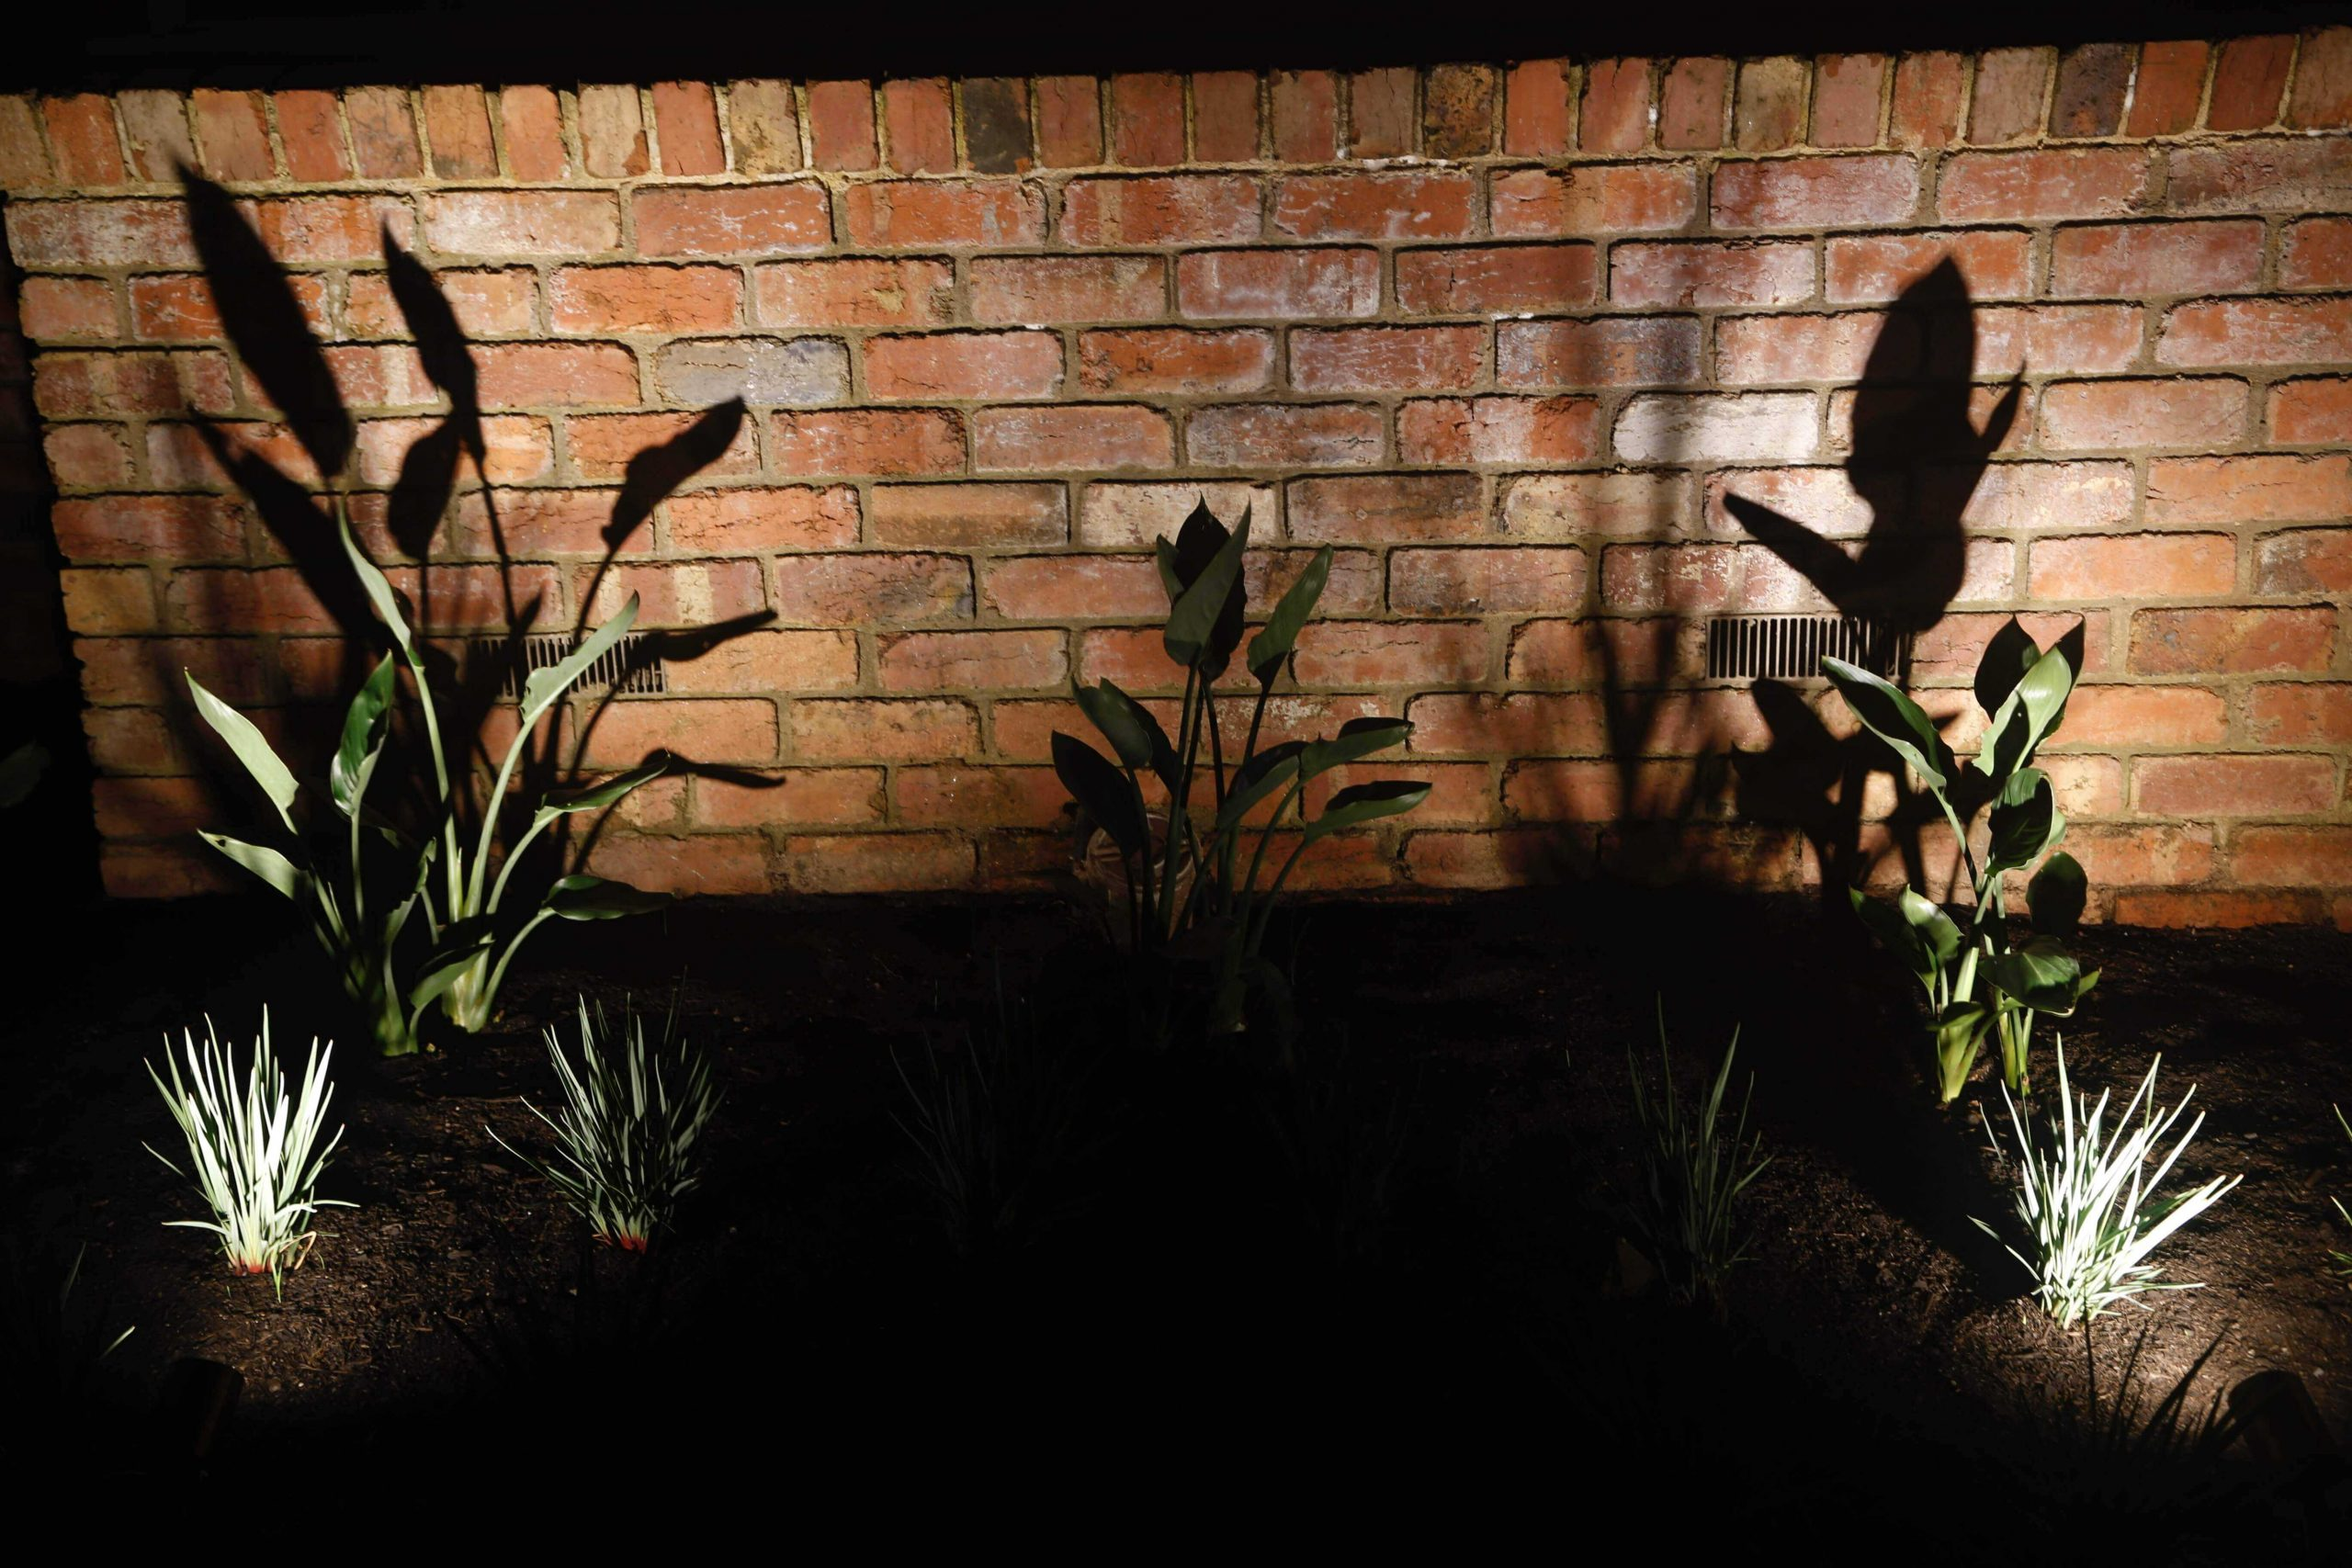 Camberwell electrician installed outdoor garden lighting that can be controlled from your phone